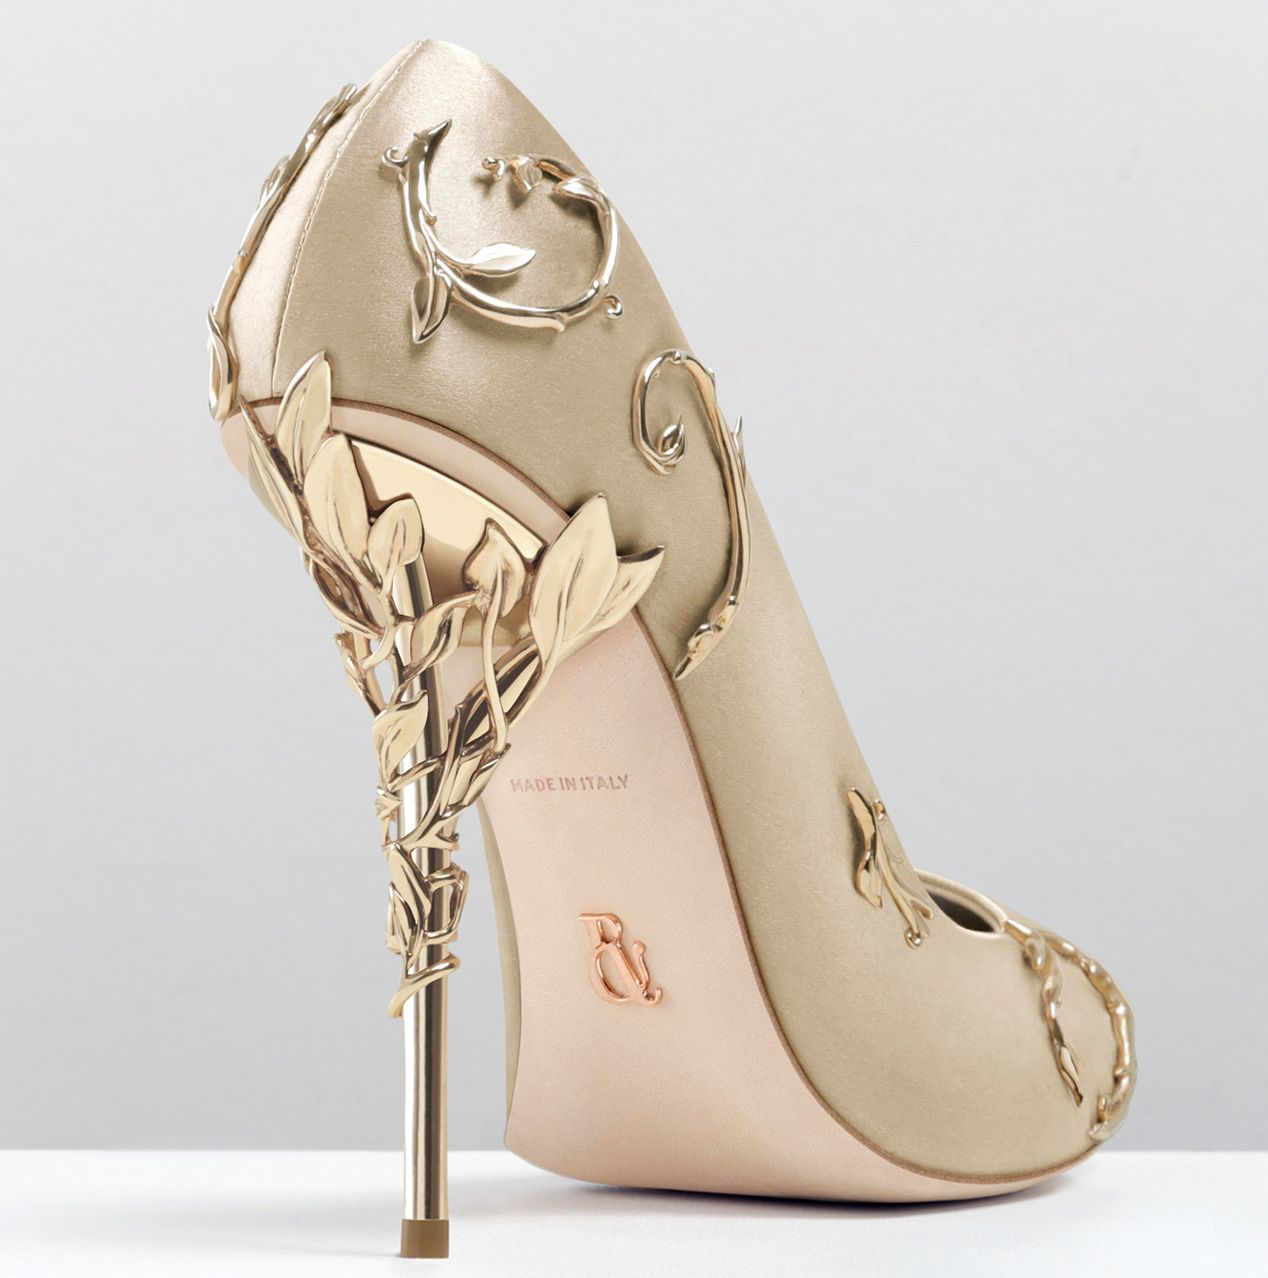 With ornamental filigree leaves spiraling naturally up the heel, the gold  satin Eden pump harks back to the beauty and perfection of a lost paradise.